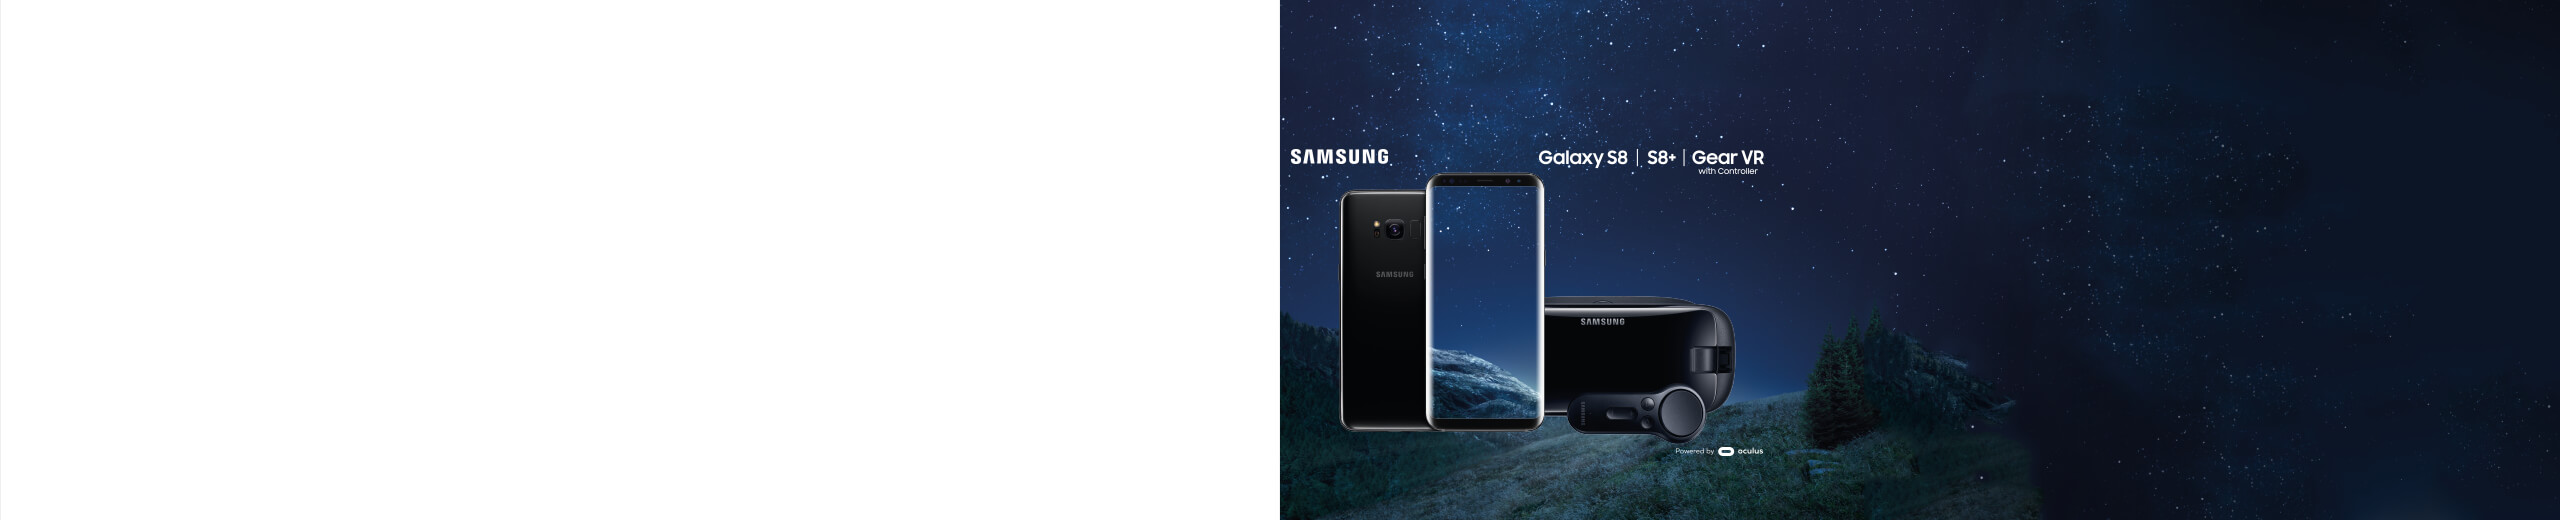 Samsung Galaxy S8 Gear Vr Offer Banner Vodafone Uk